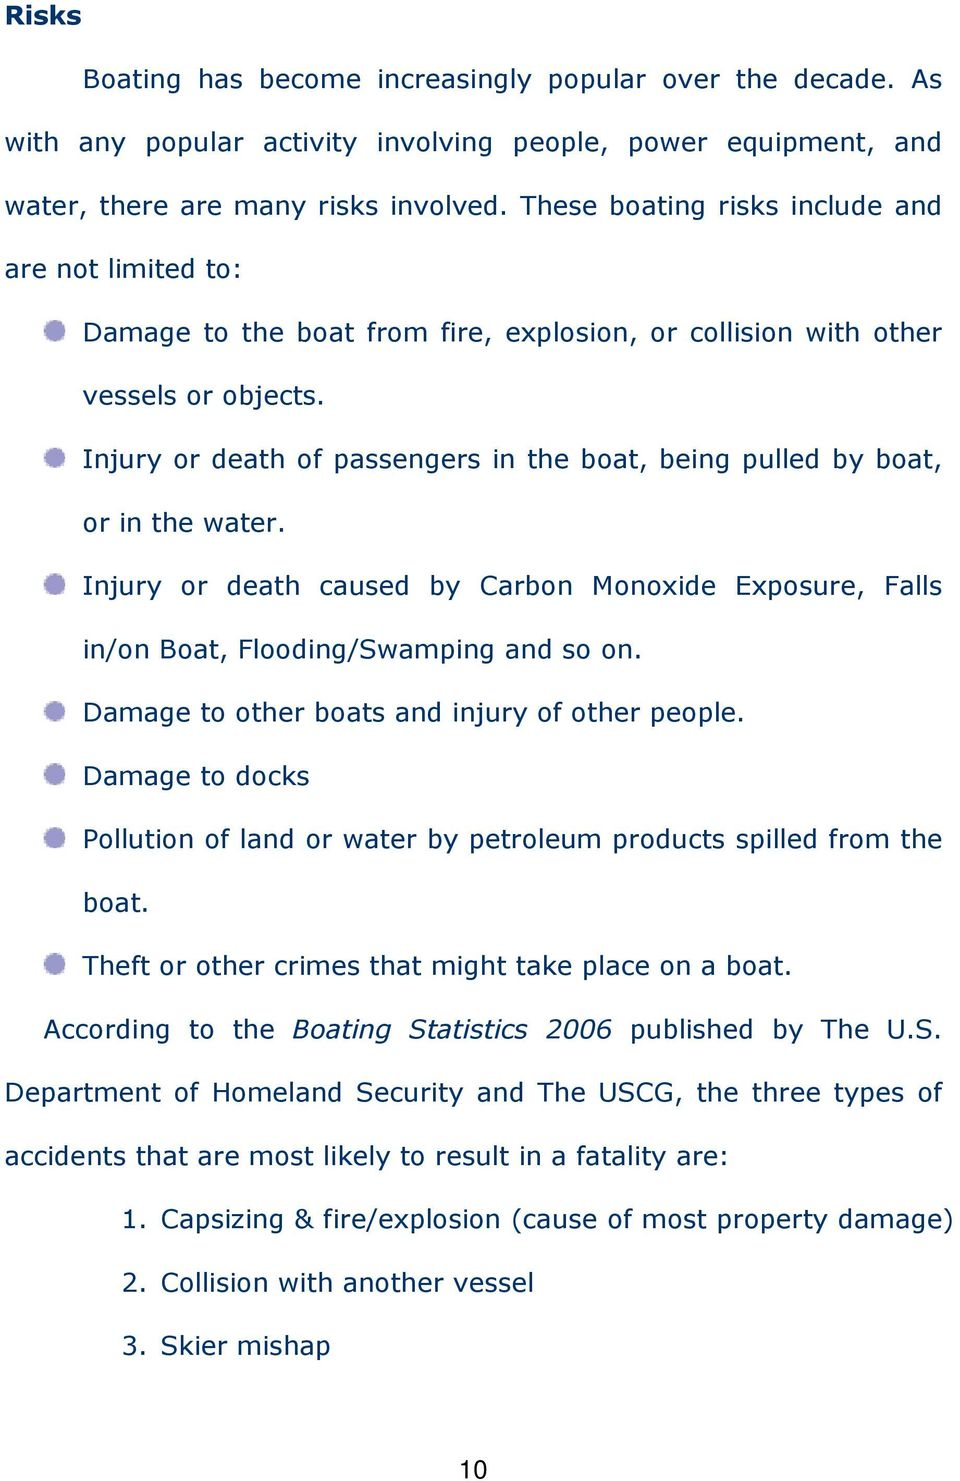 Injury or death of passengers in the boat, being pulled by boat, or in the water. Injury or death caused by Carbon Monoxide Exposure, Falls in/on Boat, Flooding/Swamping and so on.